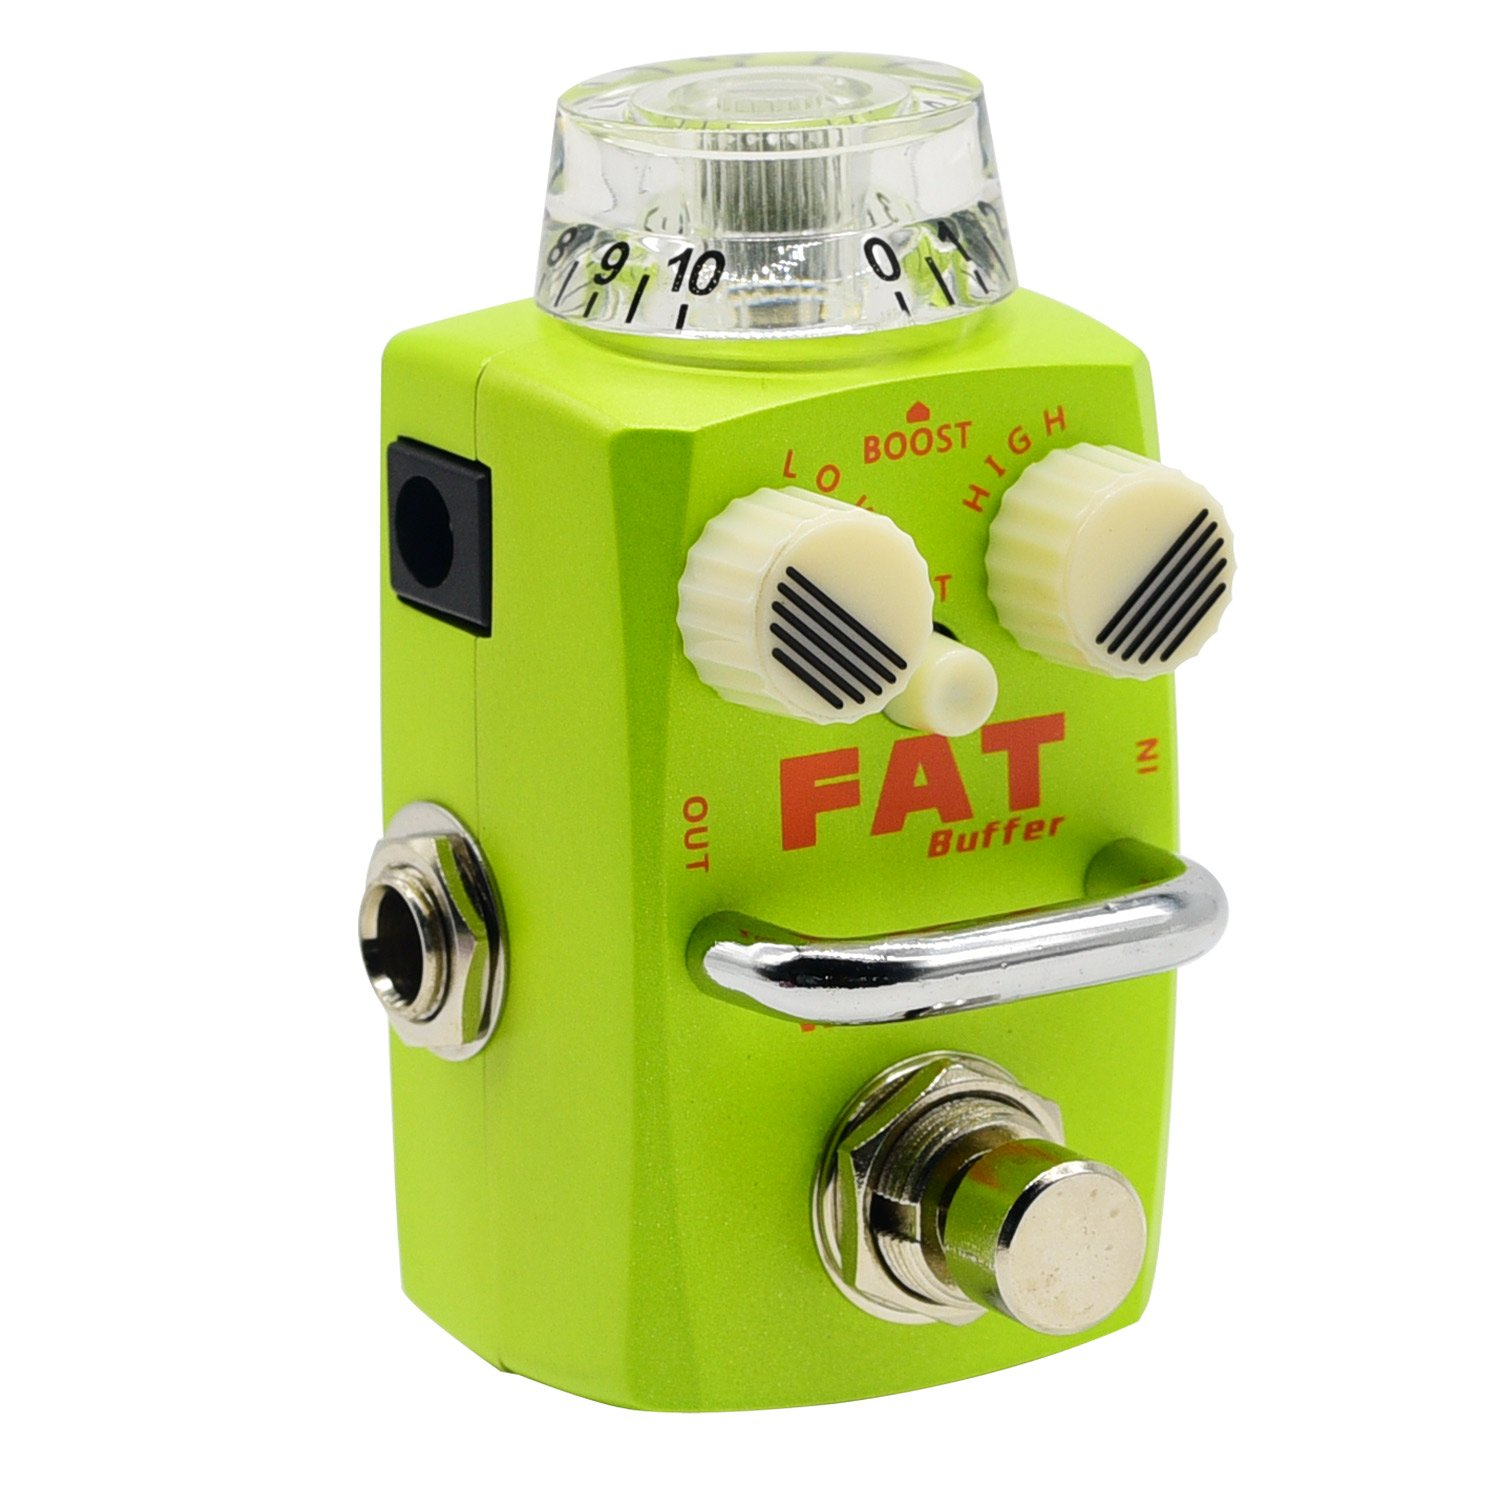 SONICAKE Hotone Skyline Fat Fet Preamp Booster w/h Low Cut Filter Guitar Effects Pedal by SONICAKE